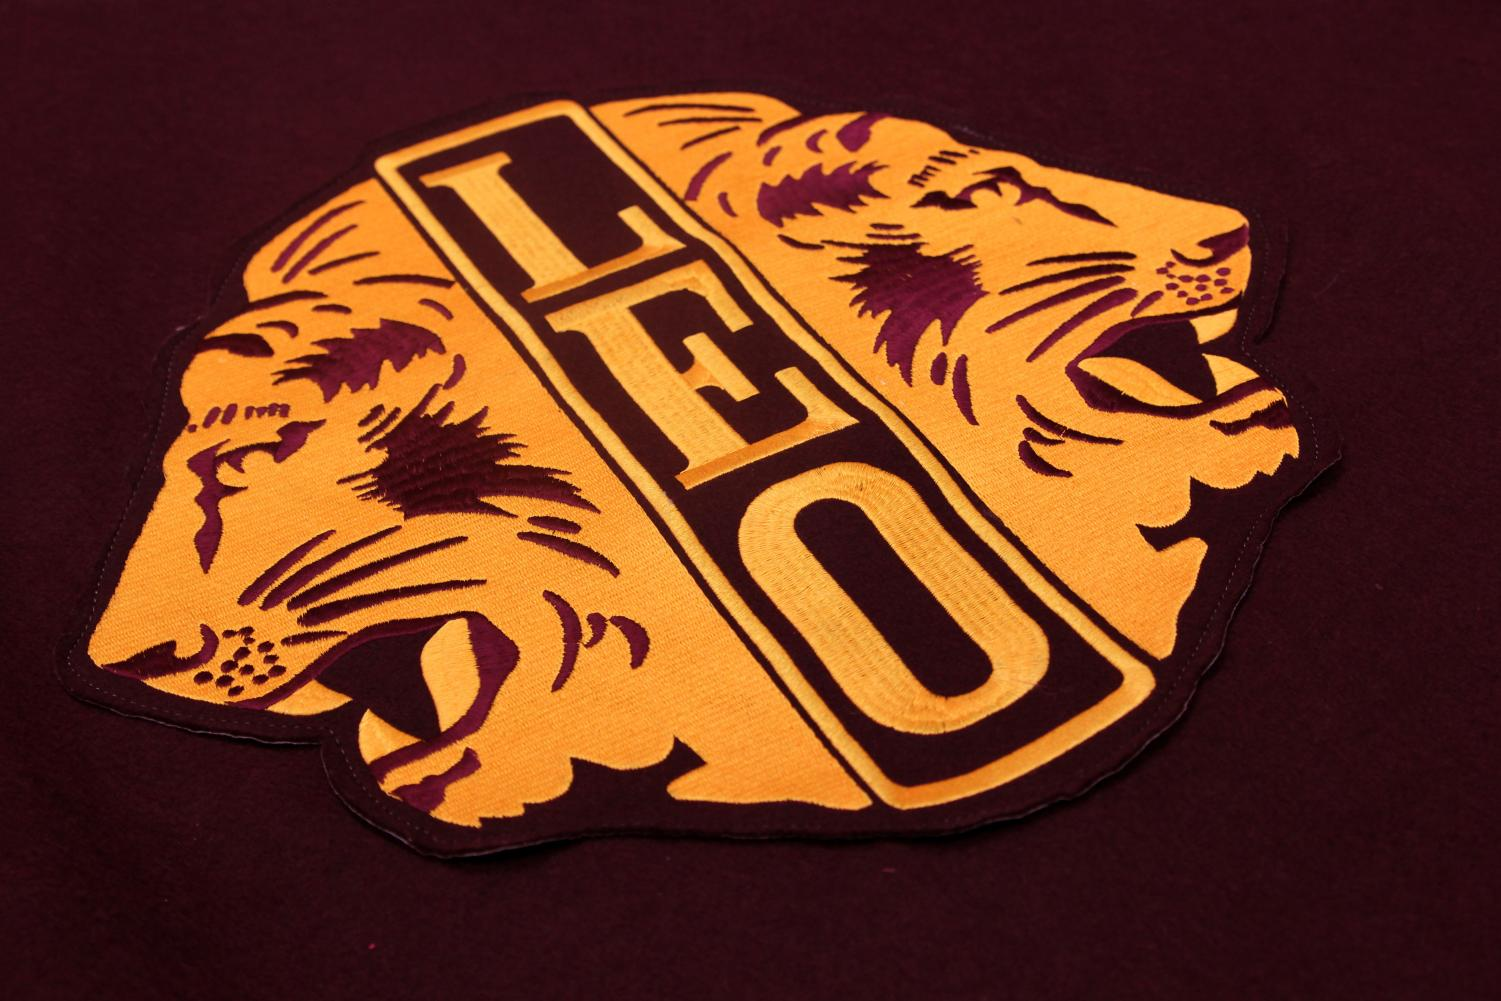 Leo Club is a non profit organization focused on community service.